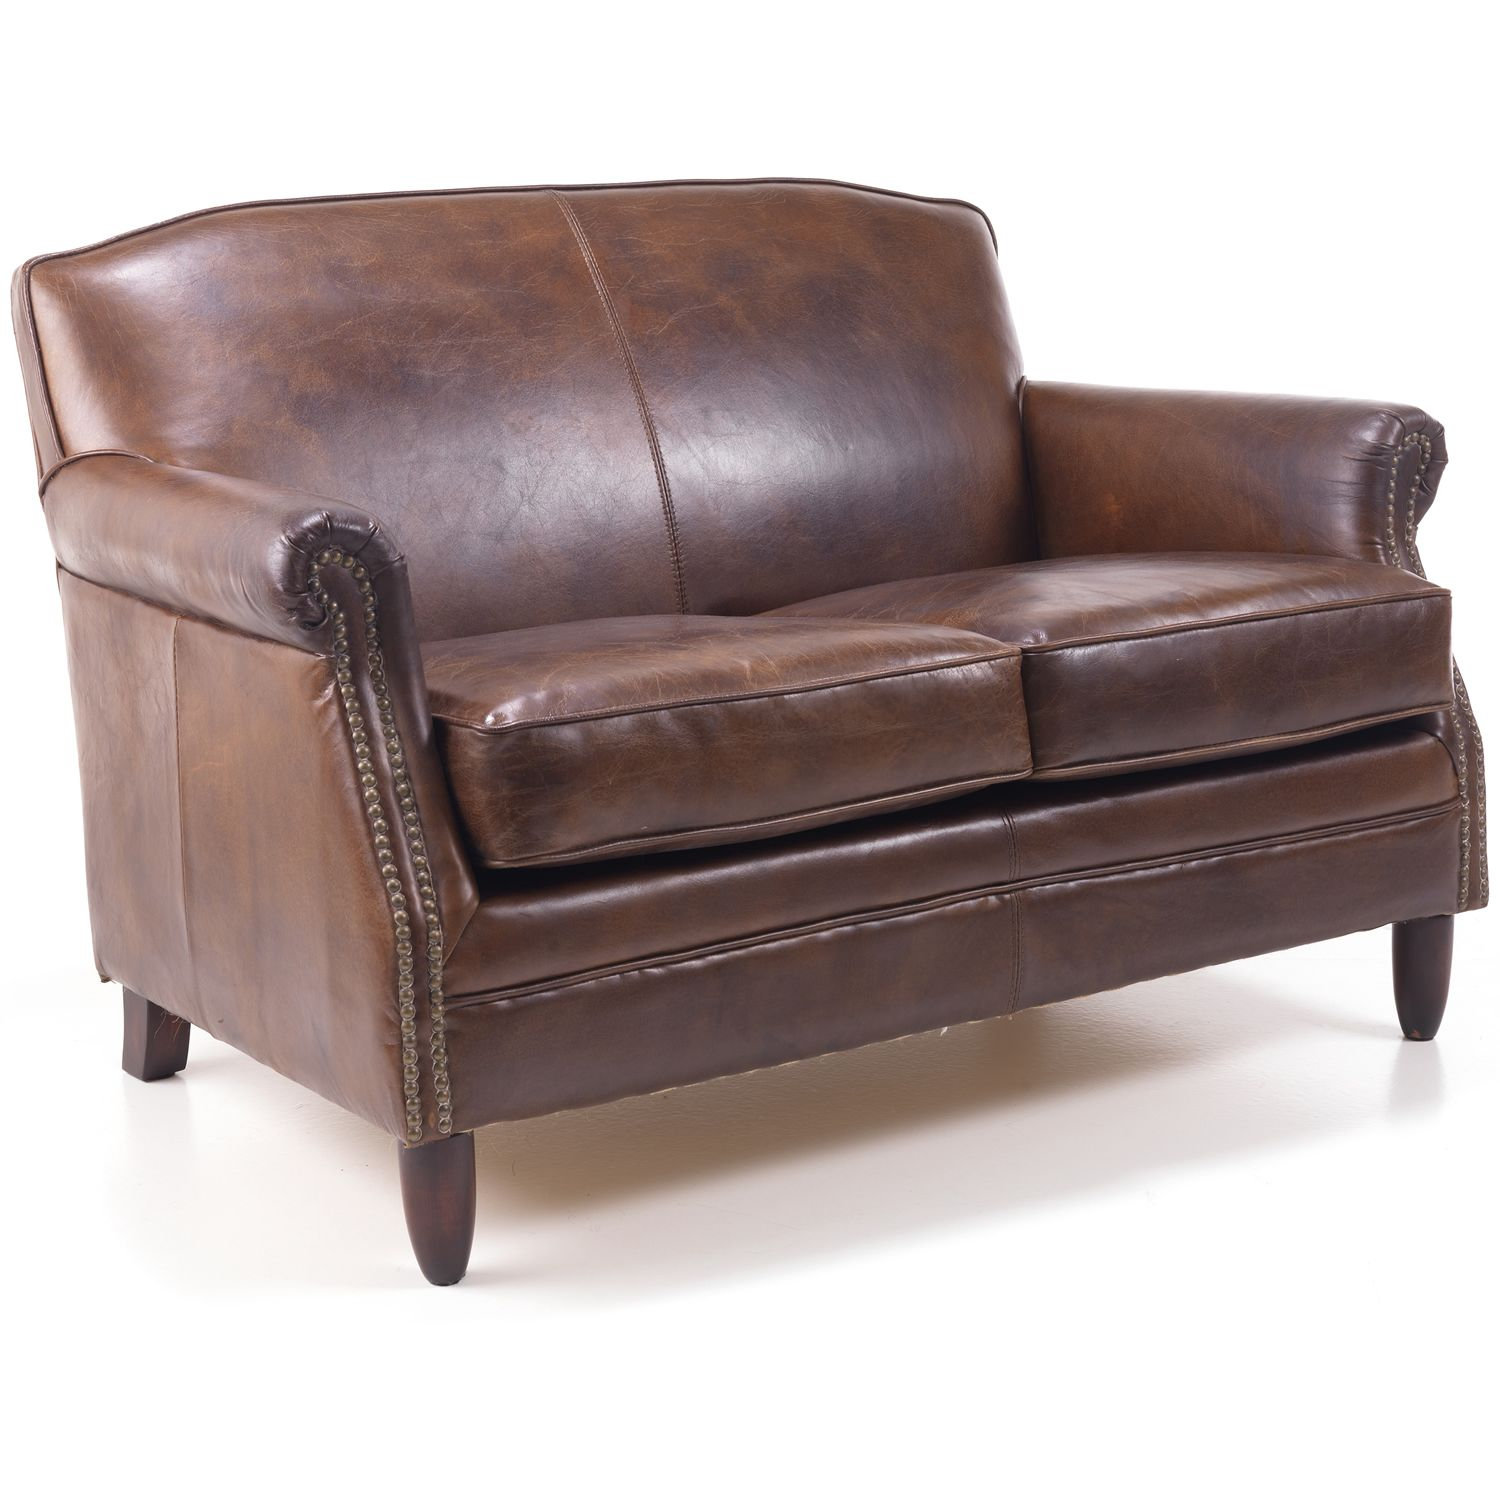 Leather Studded Style Couch Set Photograph